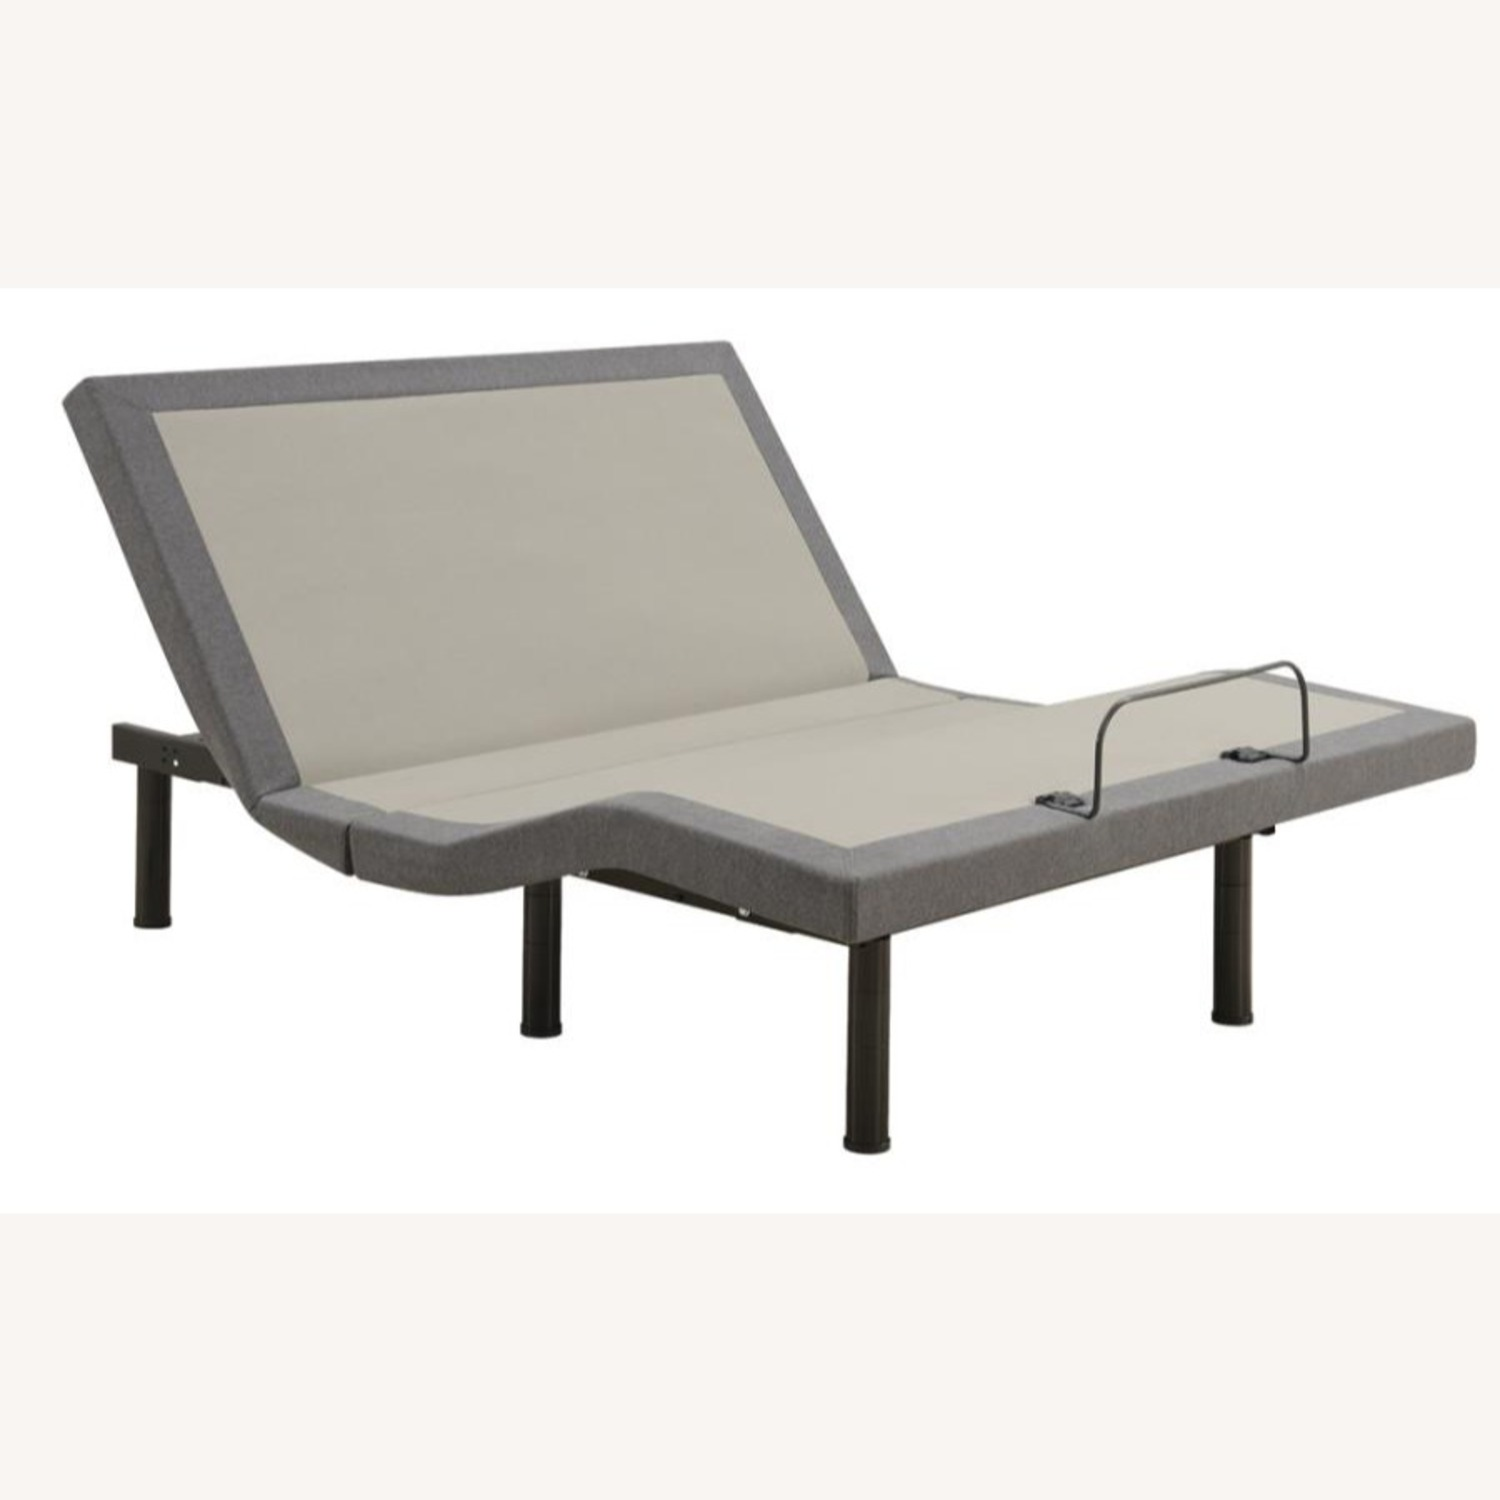 Adjustable King Bed Base In Grey Fabric - image-0